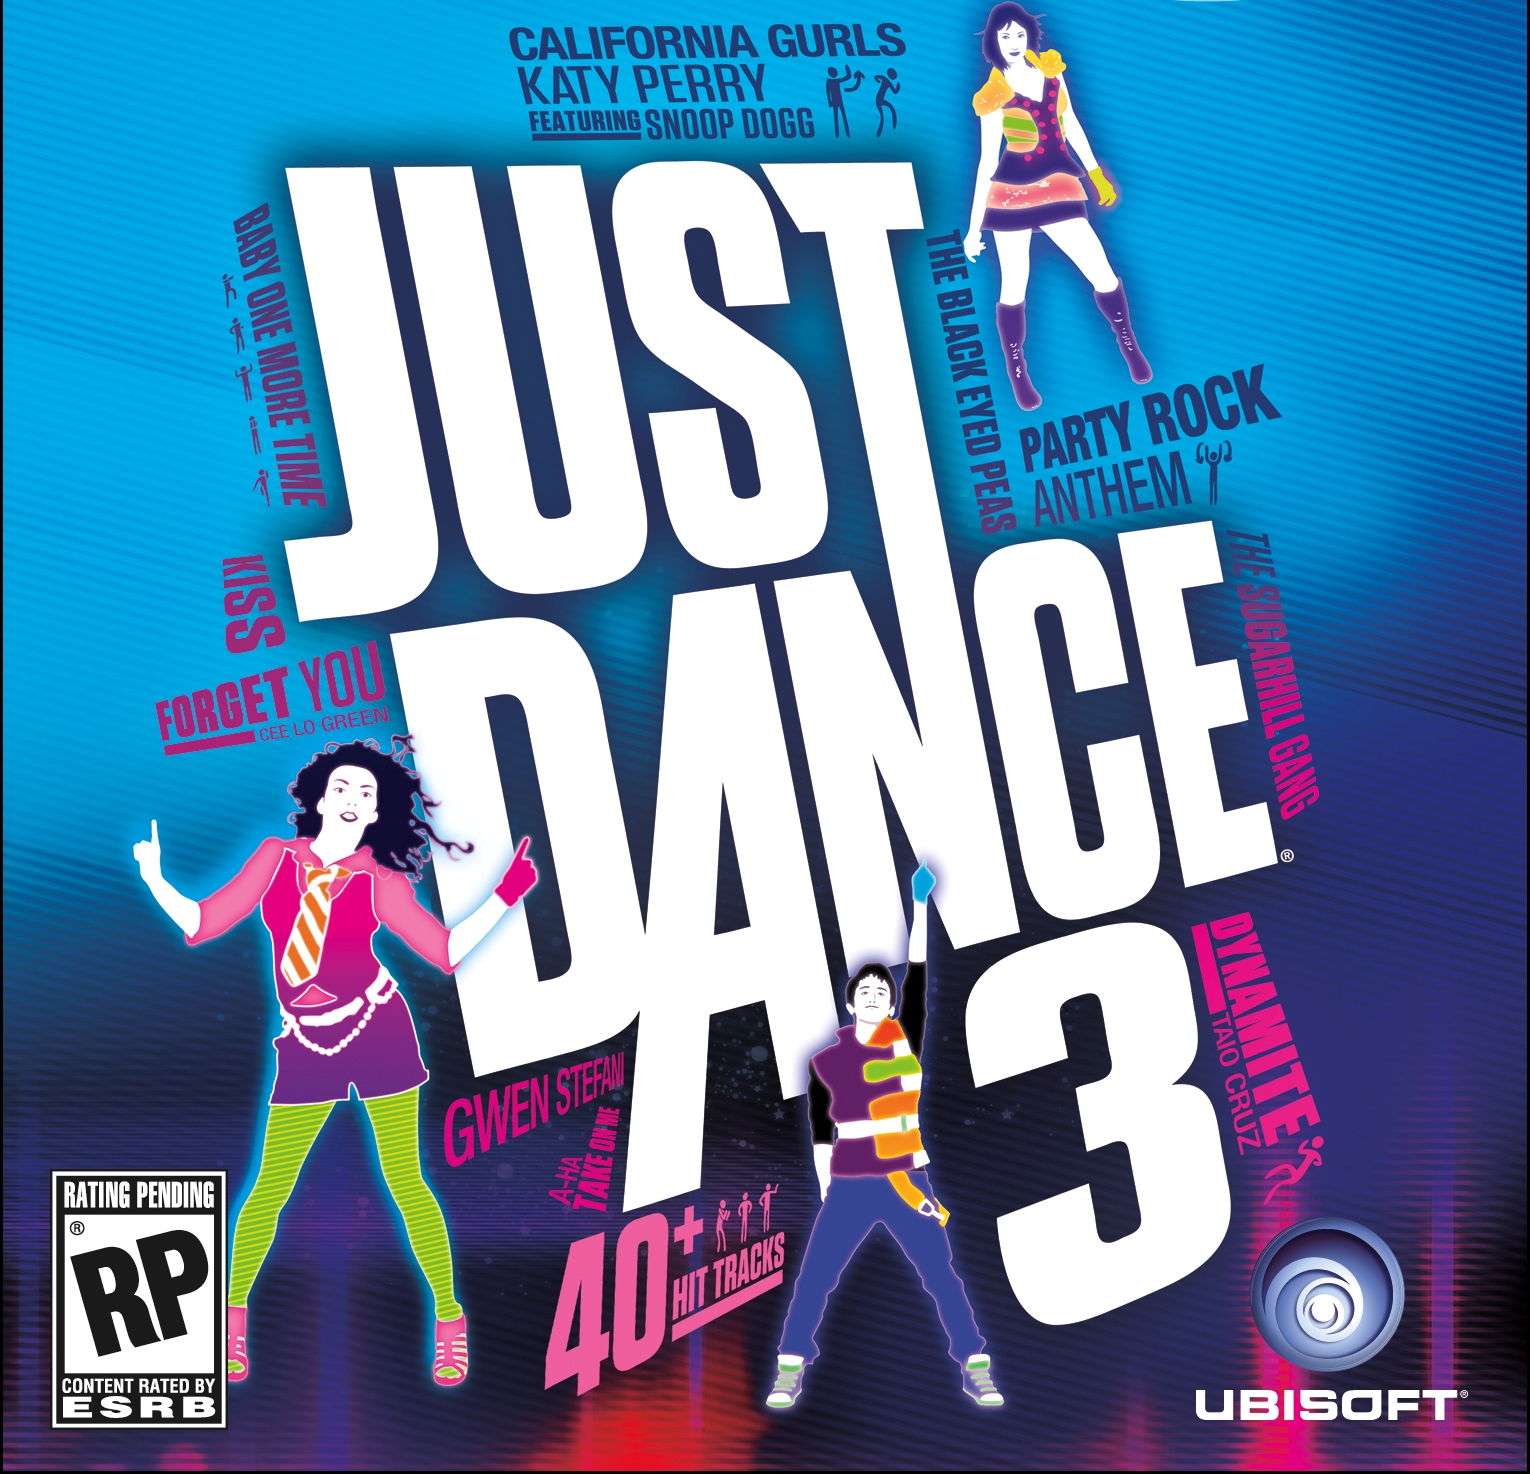 Just Dance 3 Song List